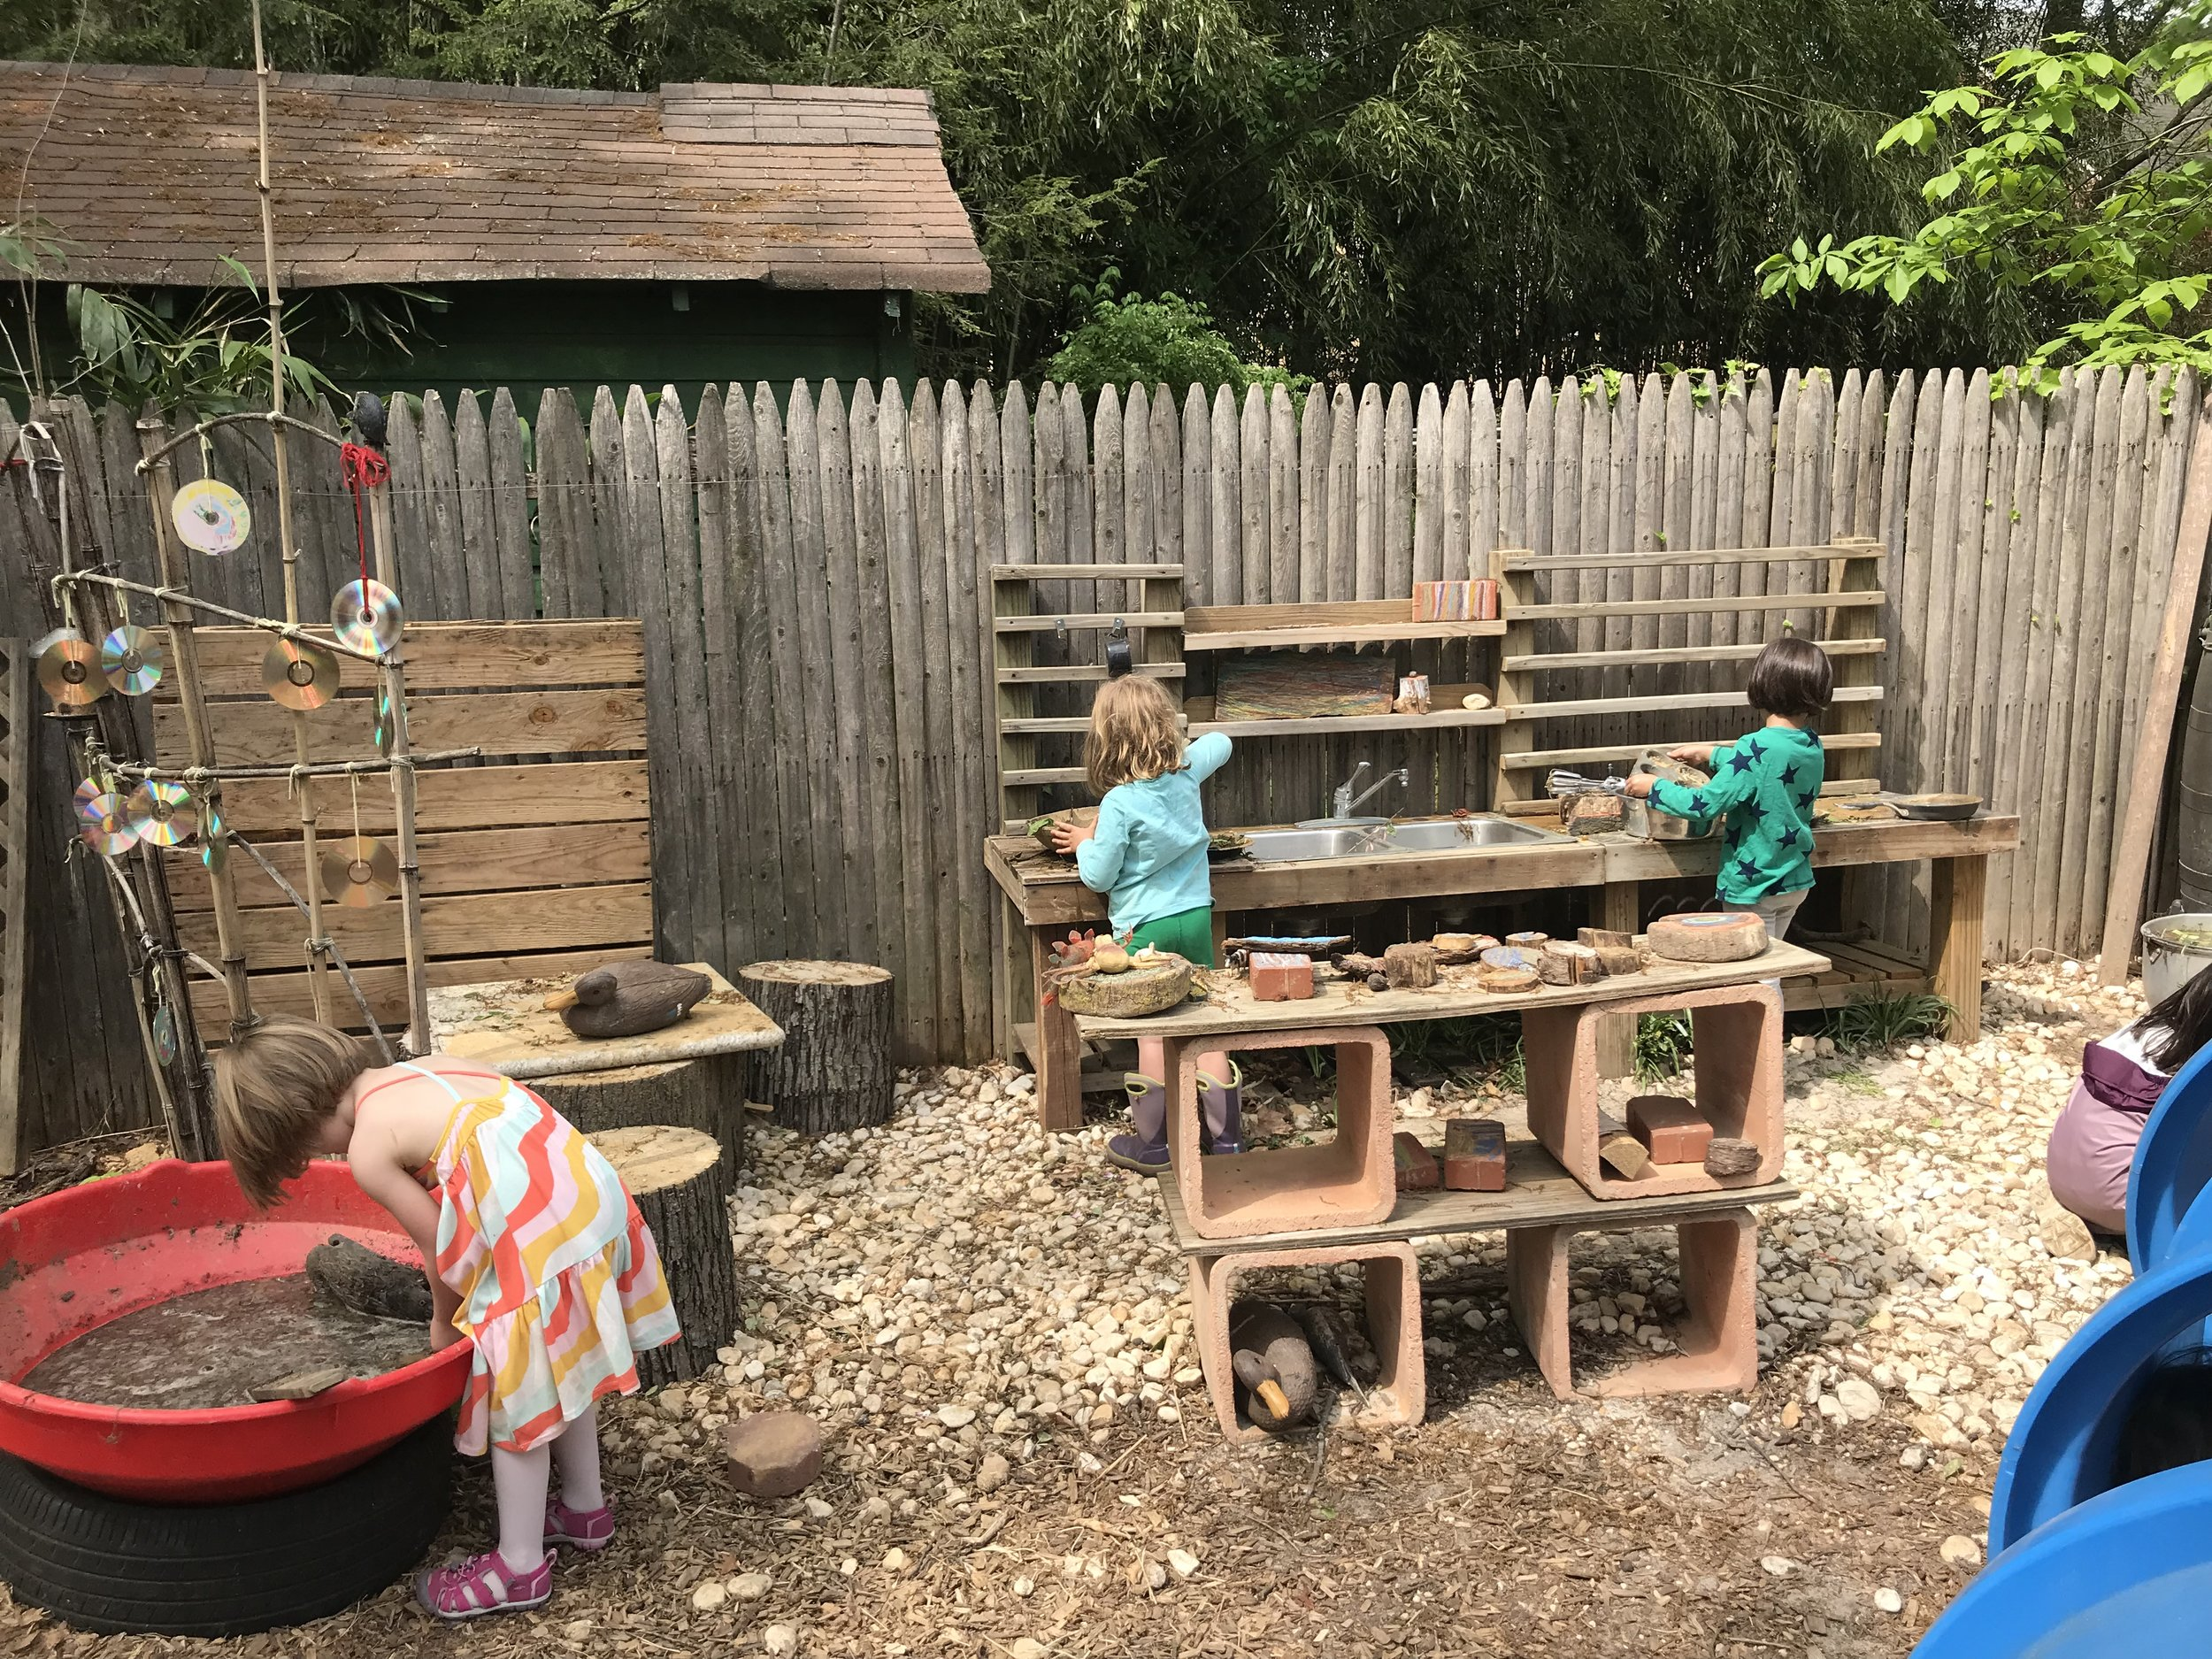 Meanwhile at the mud kitchen, things are really cooking. So much going on over here. The play is deep and wide.